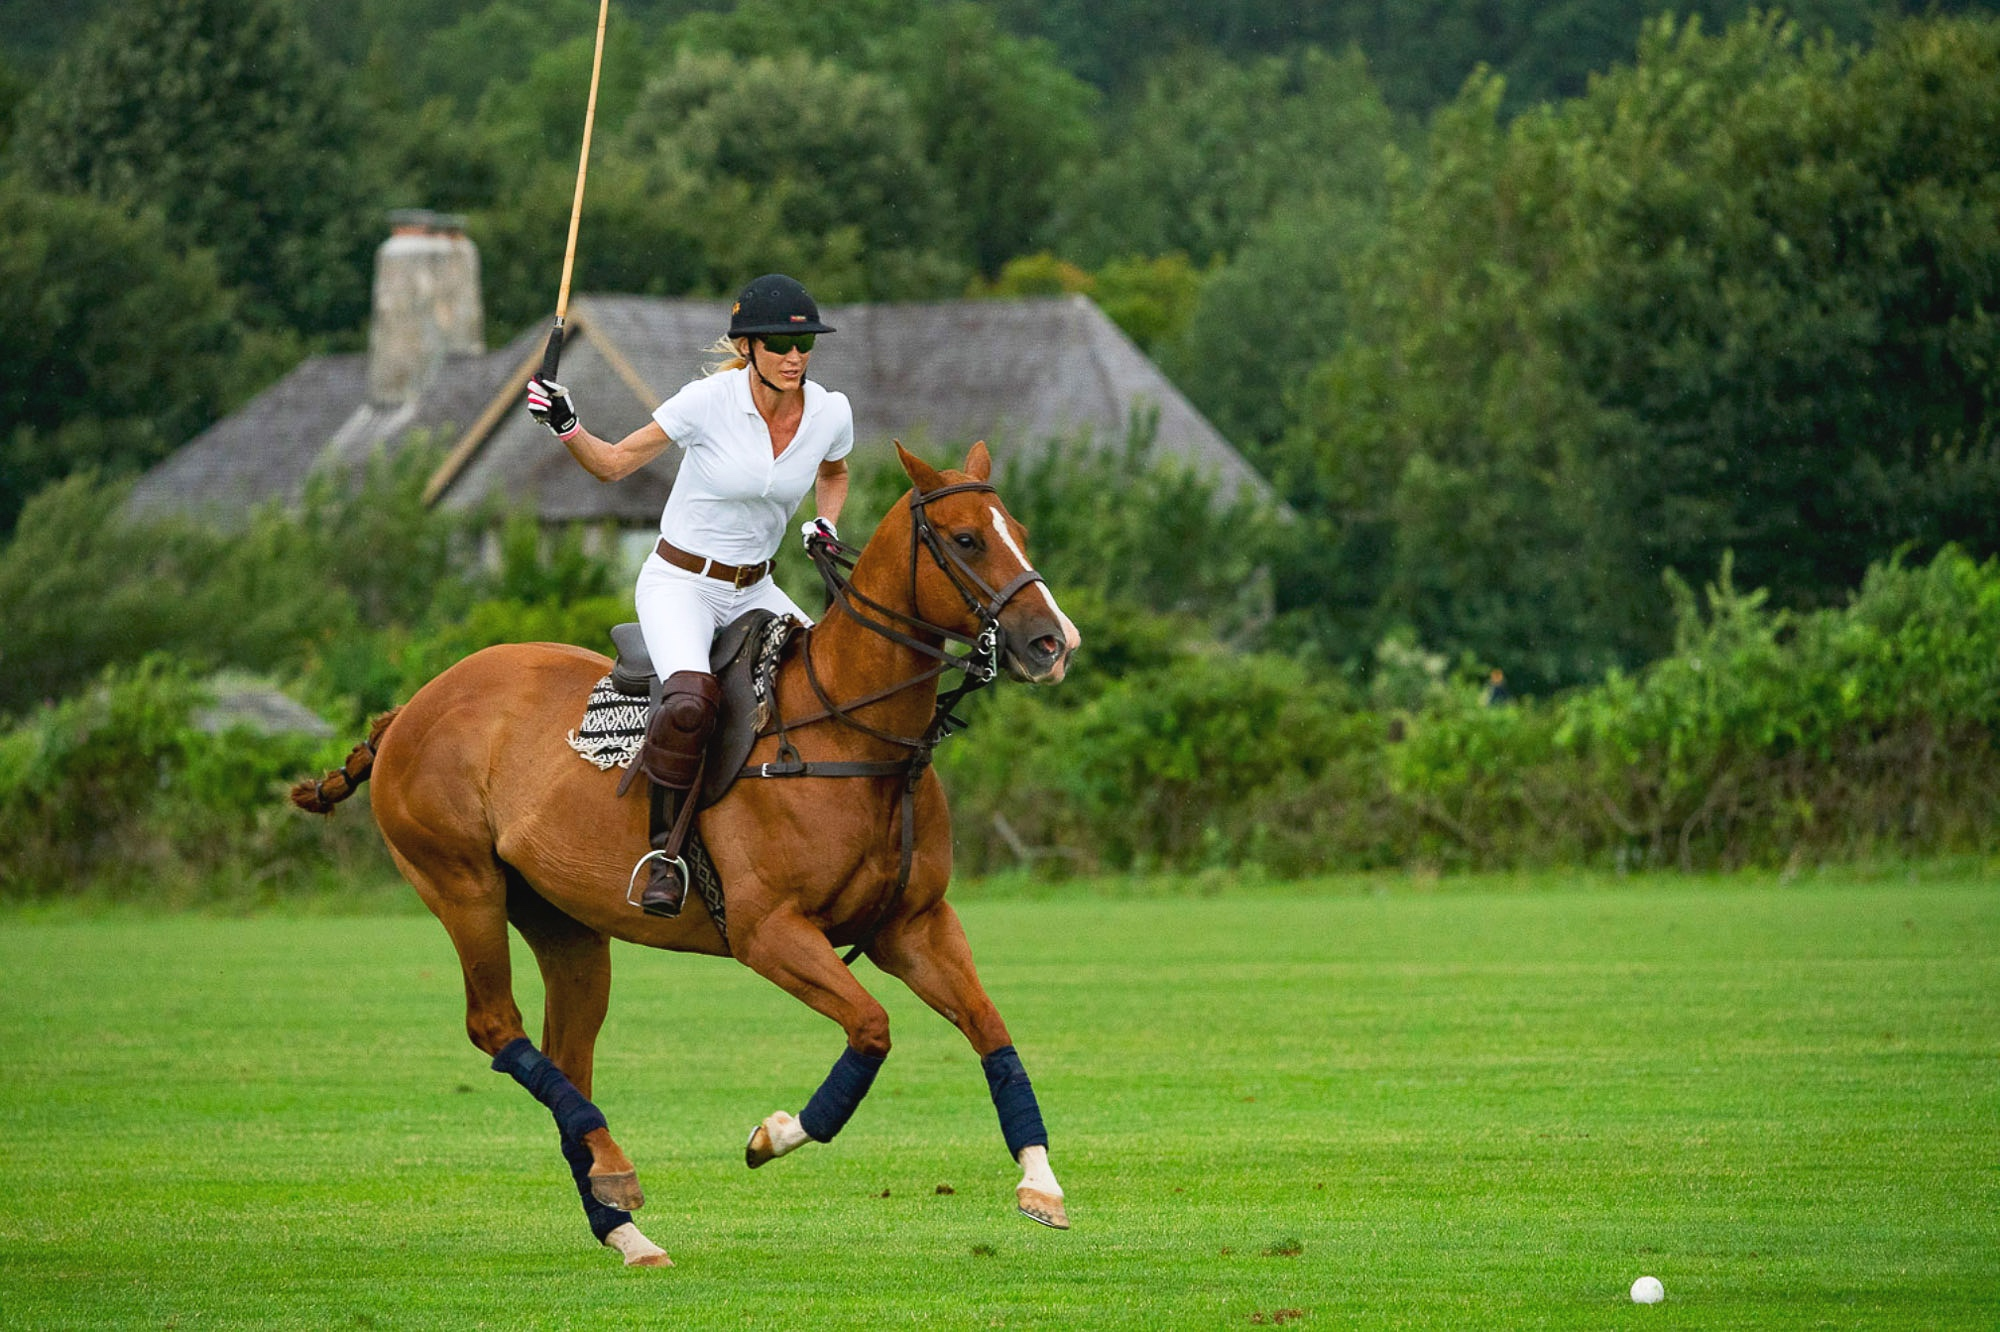 Danielle tosi one of the women polo playuers at the Southampton Polo Club takes a swing. Woment mix it up with the men. Intermural..jpg